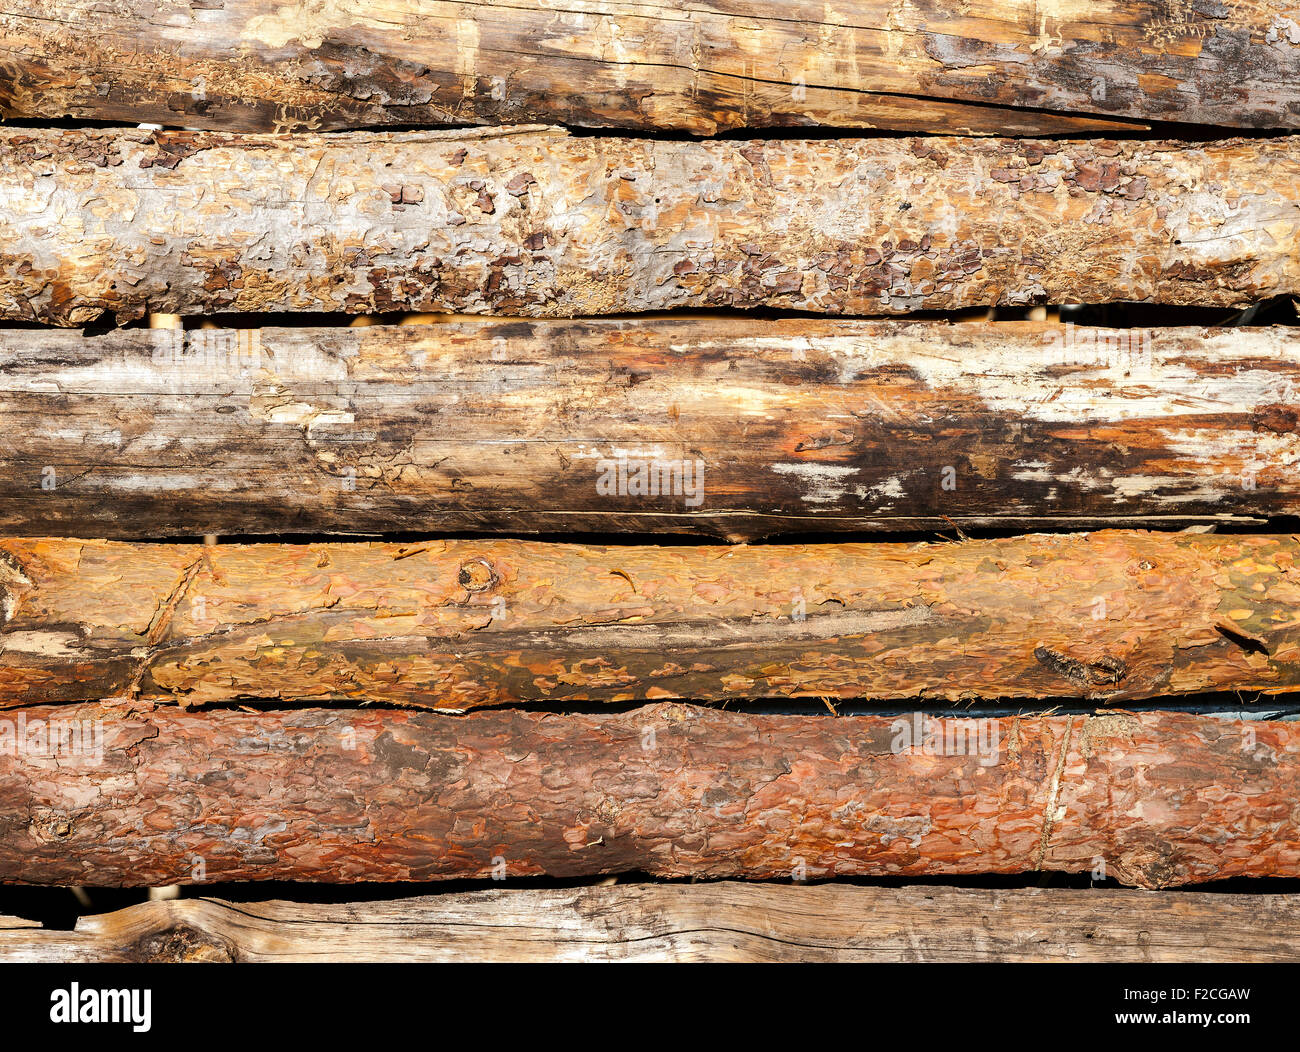 Old rough wooden planks with cracks as background - Stock Image